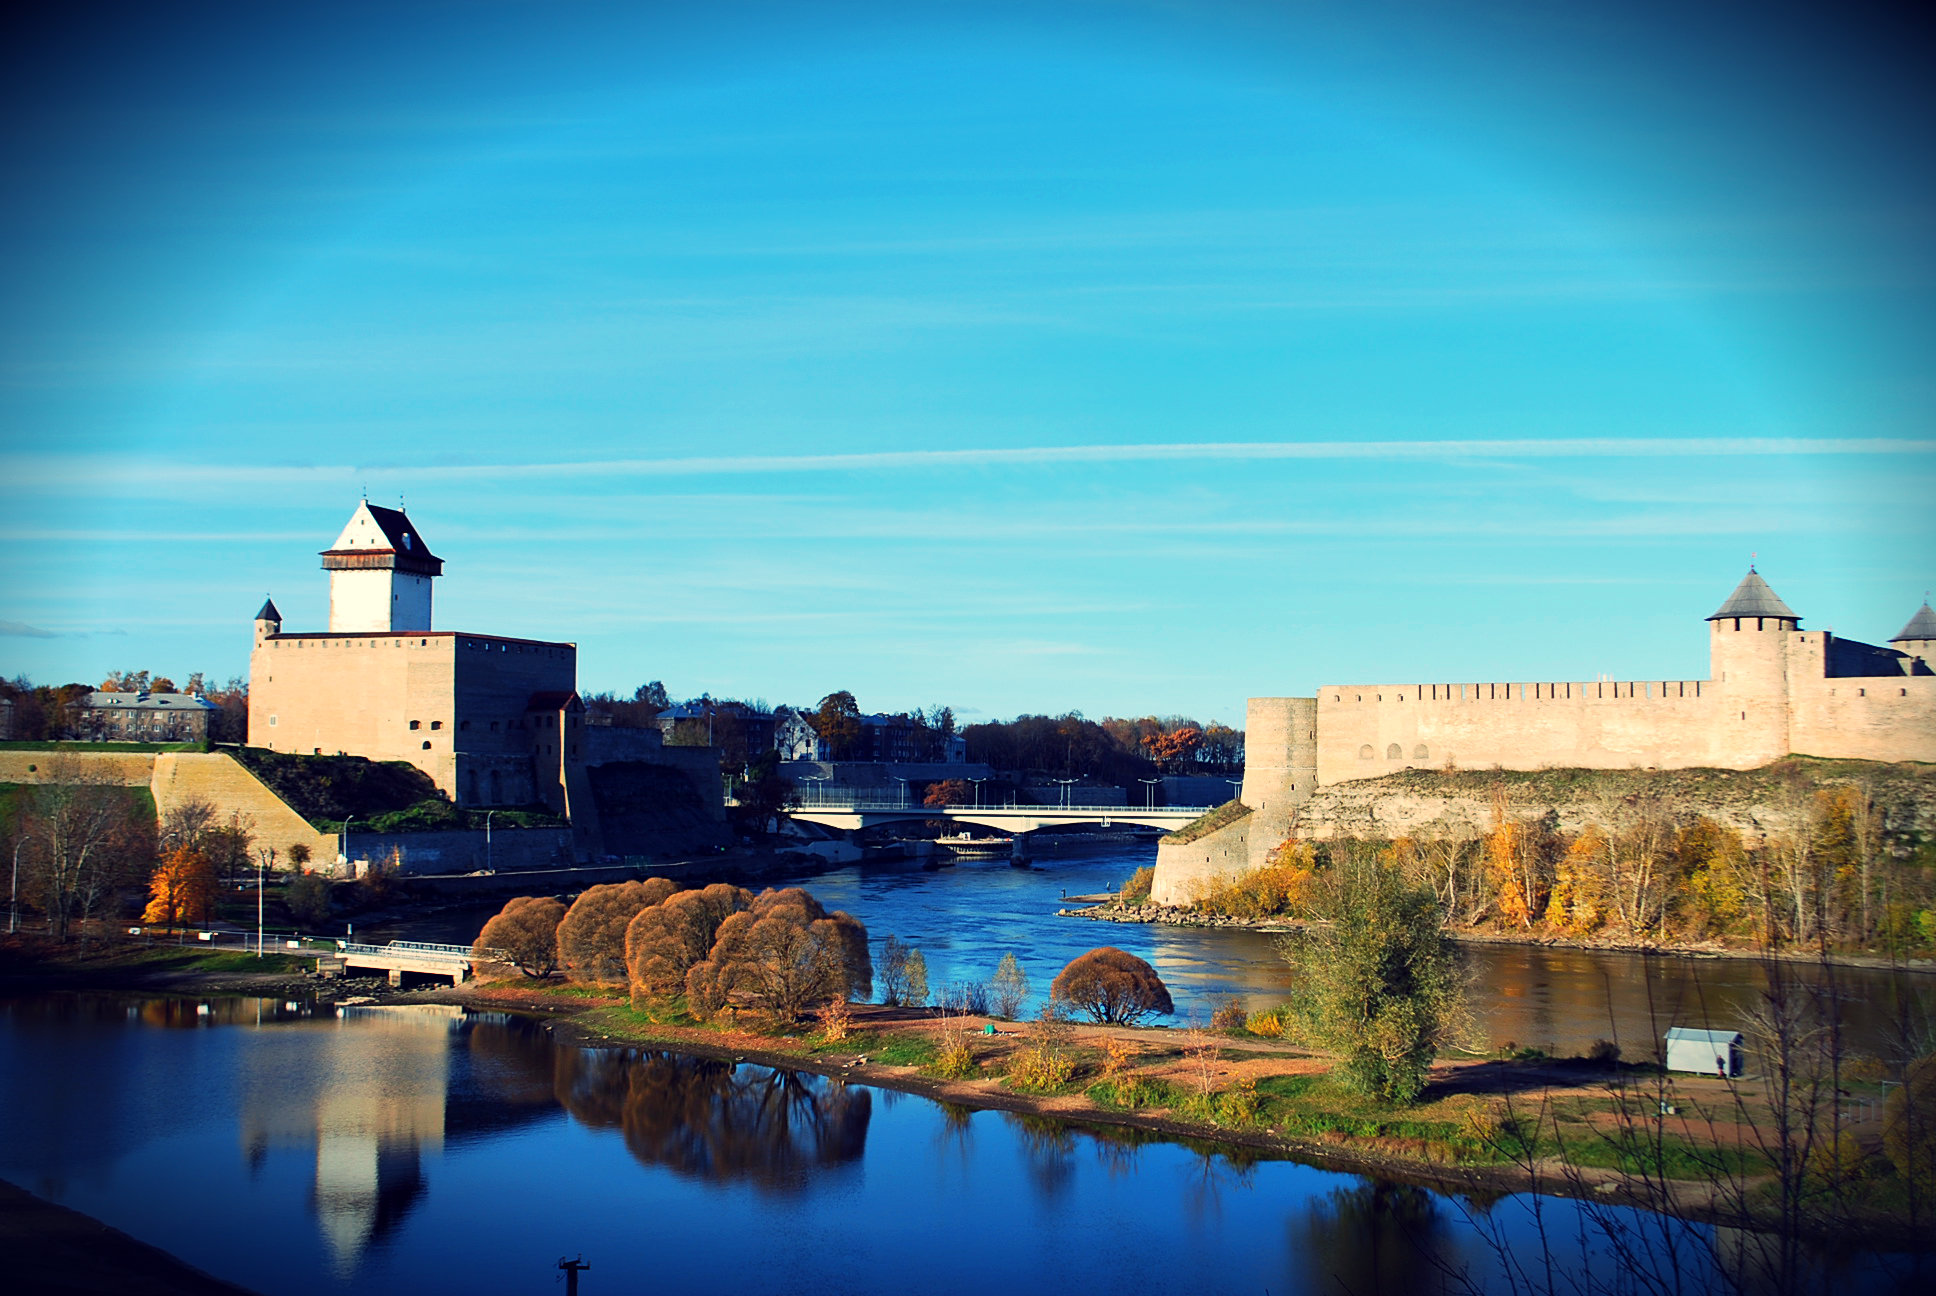 Welcome to Narva